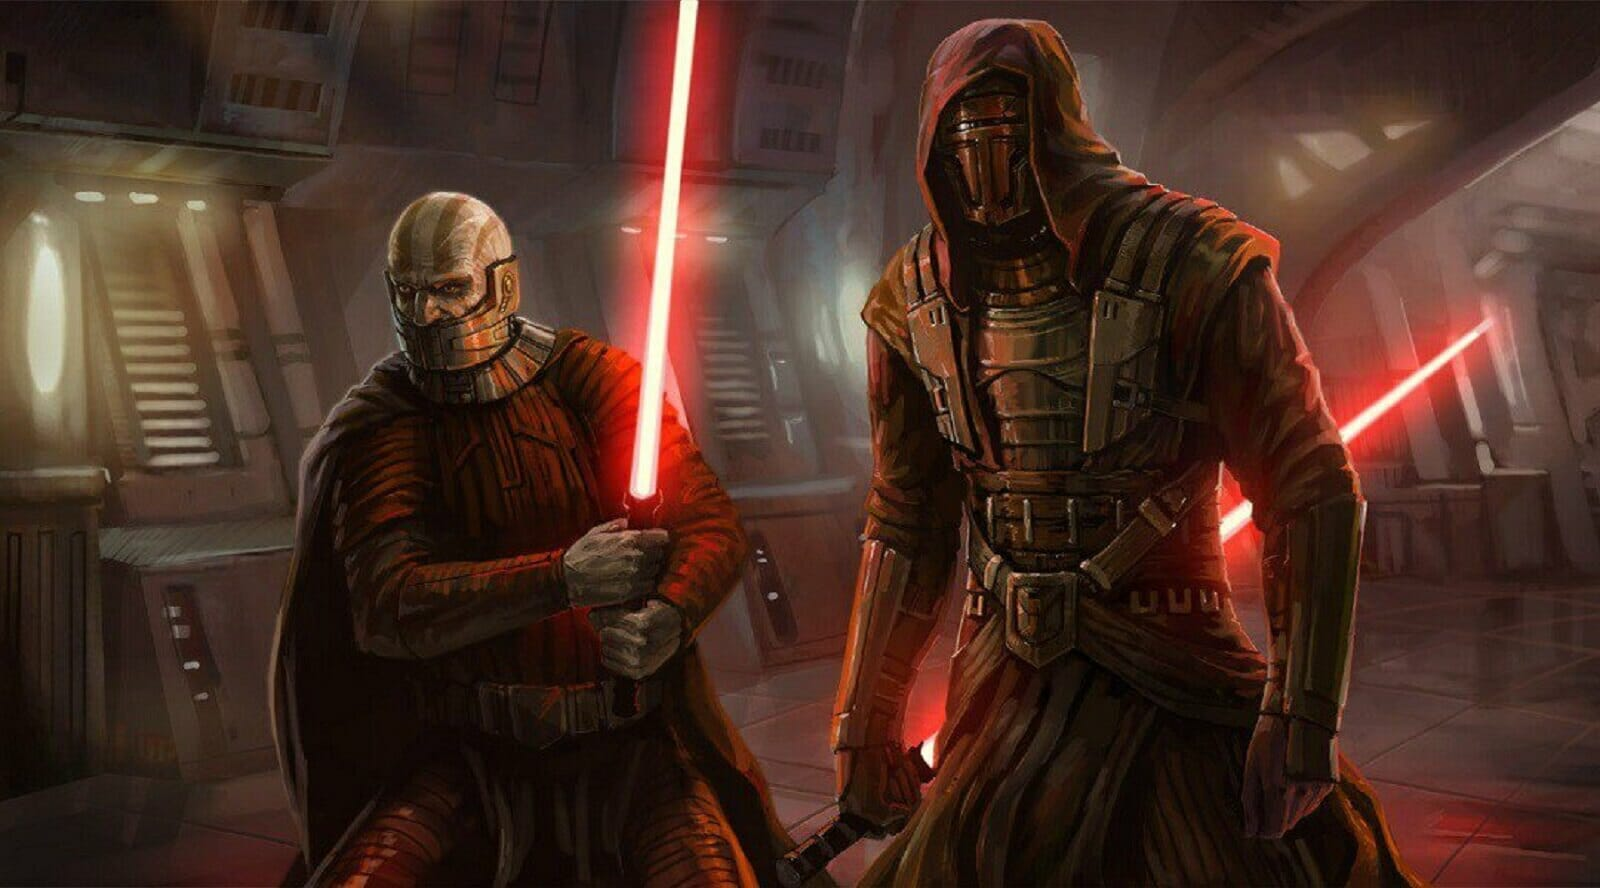 (Star Wars: Knights of the Old Republic - Bioware)